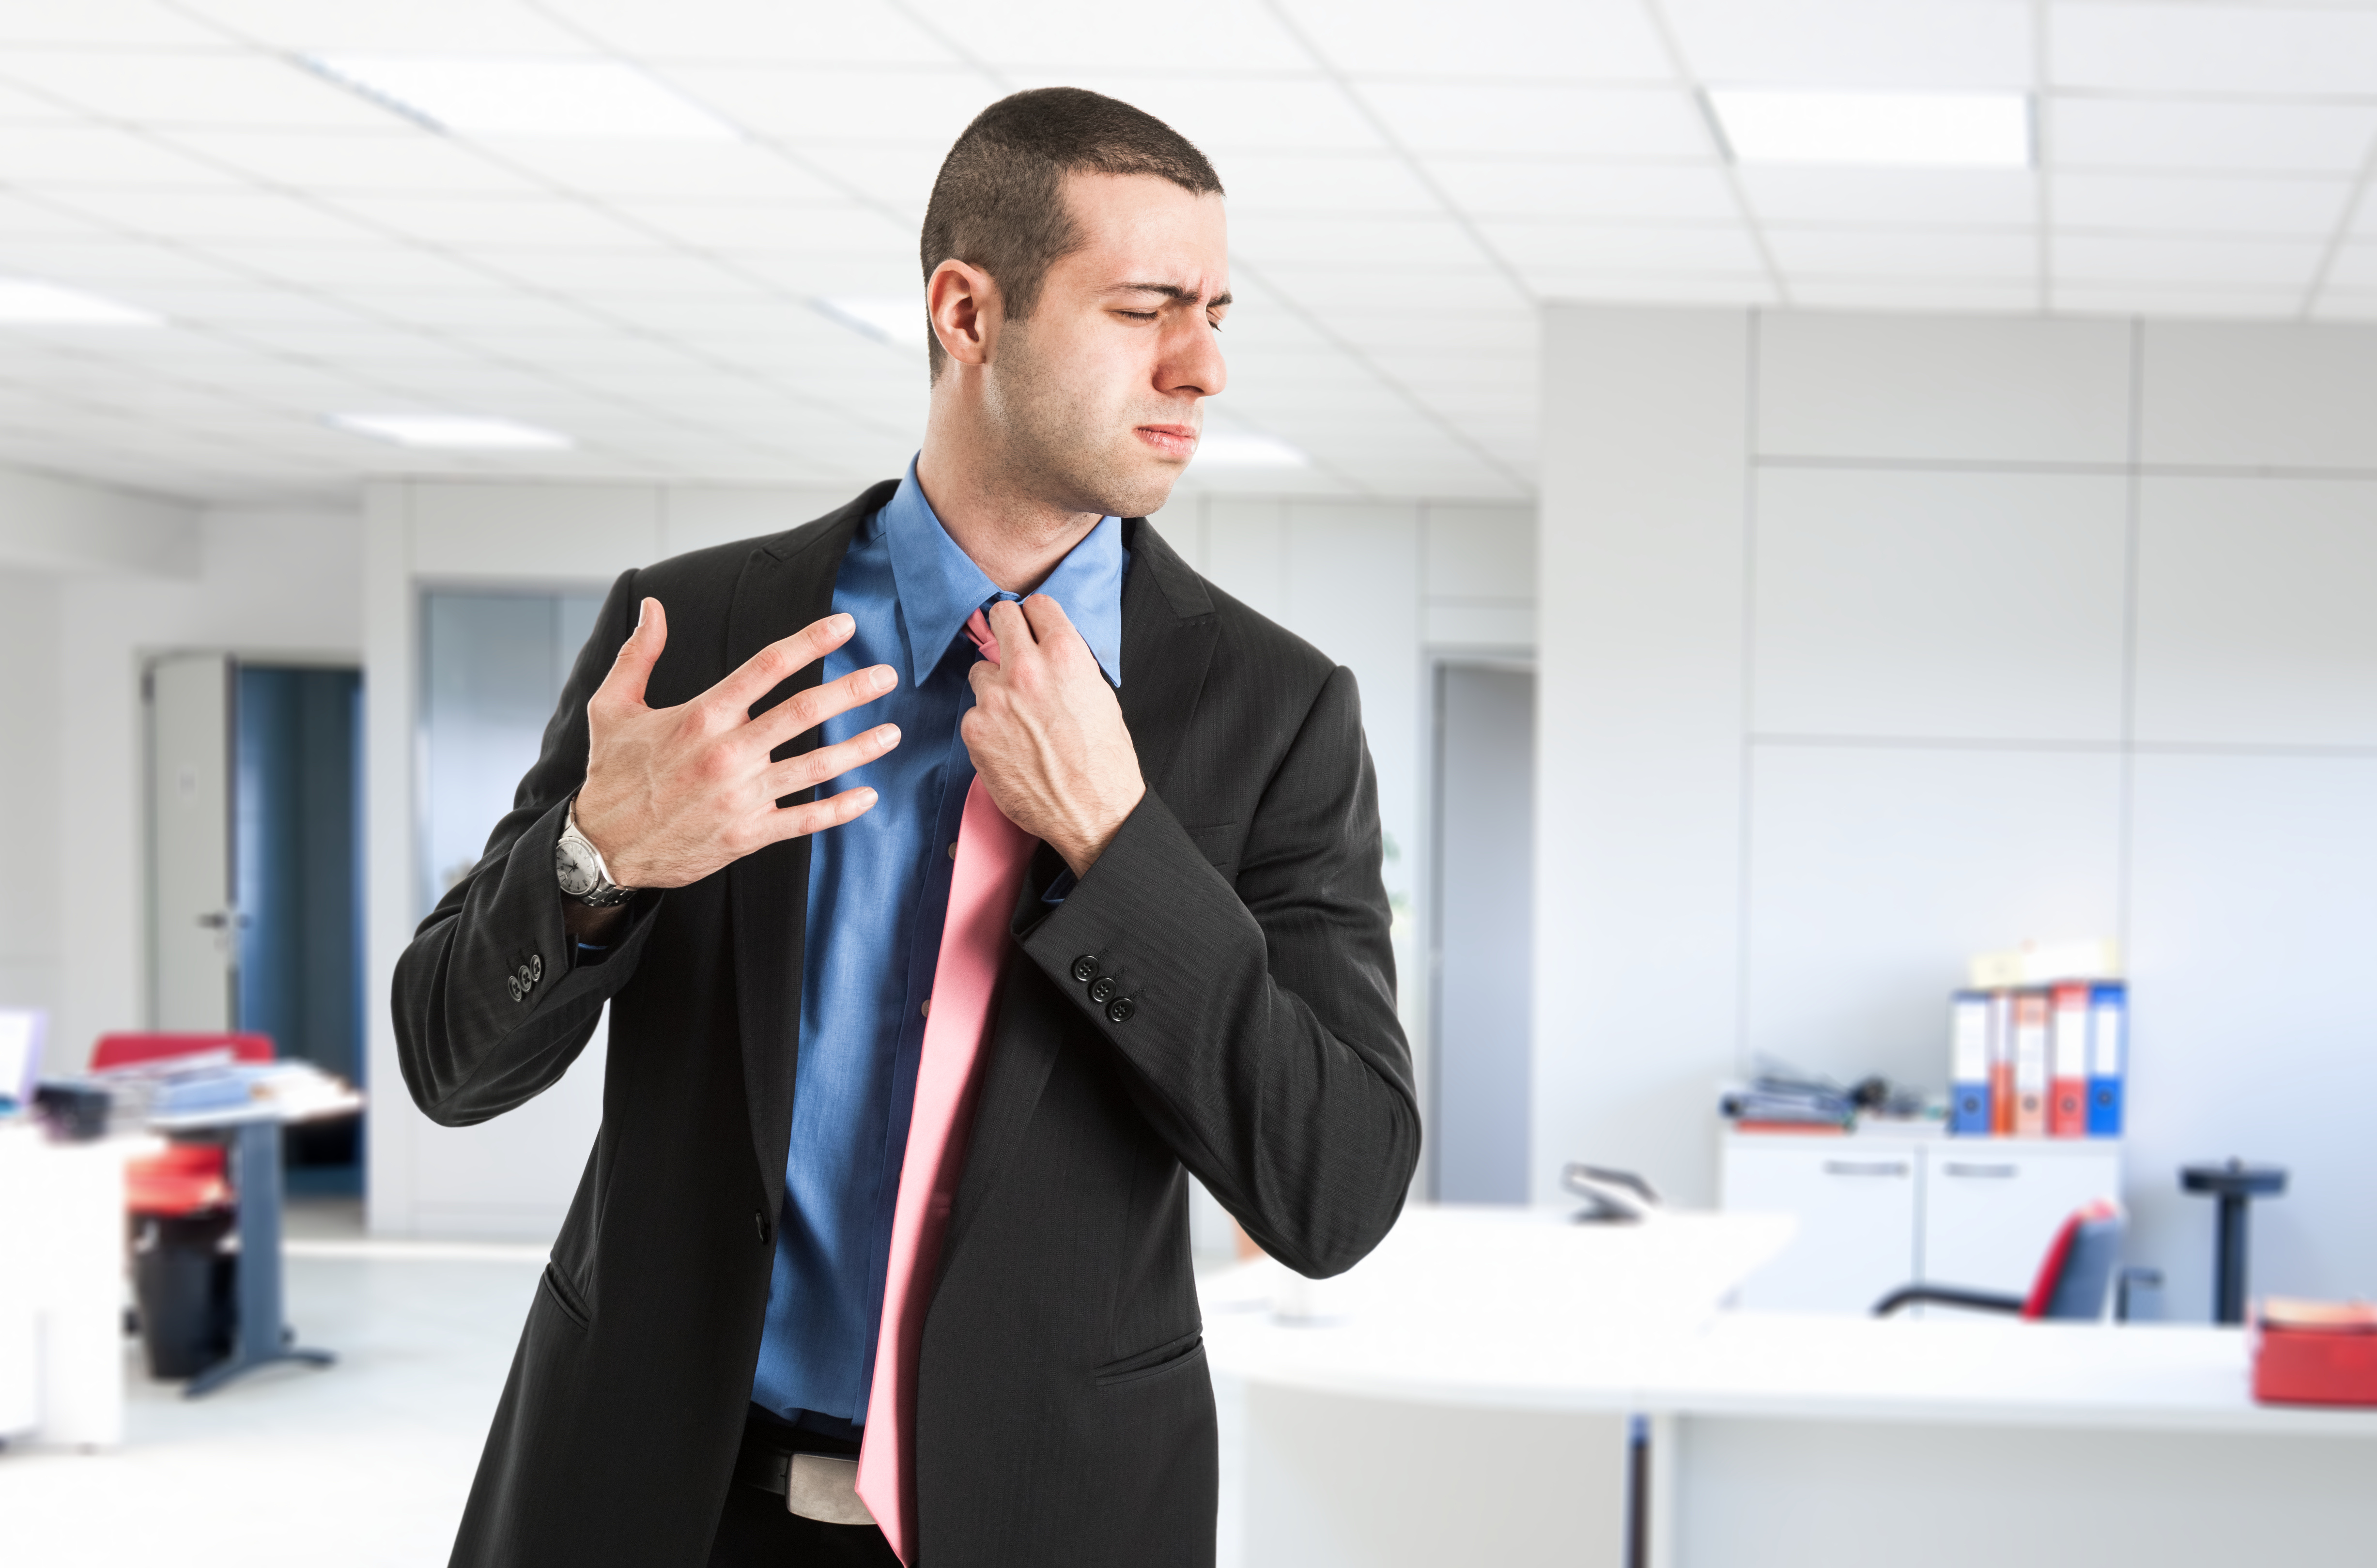 Man in an office where the air conditioner is broken